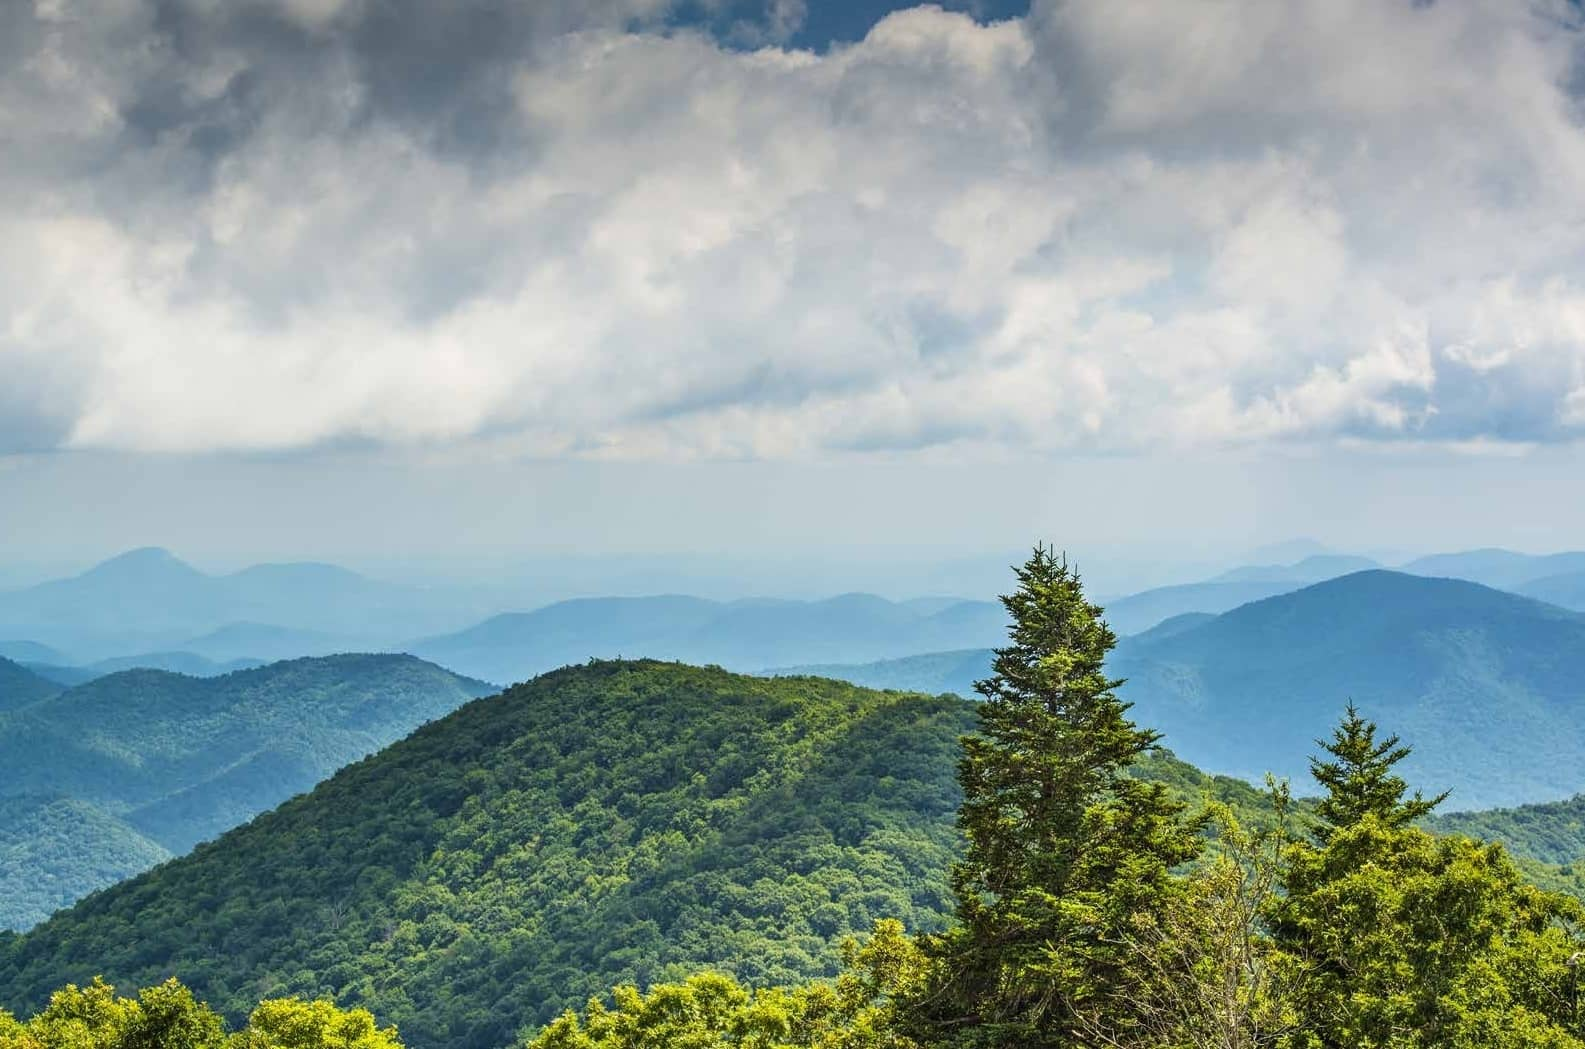 Bowhunting the Bears of the Blue Ridge Mountains